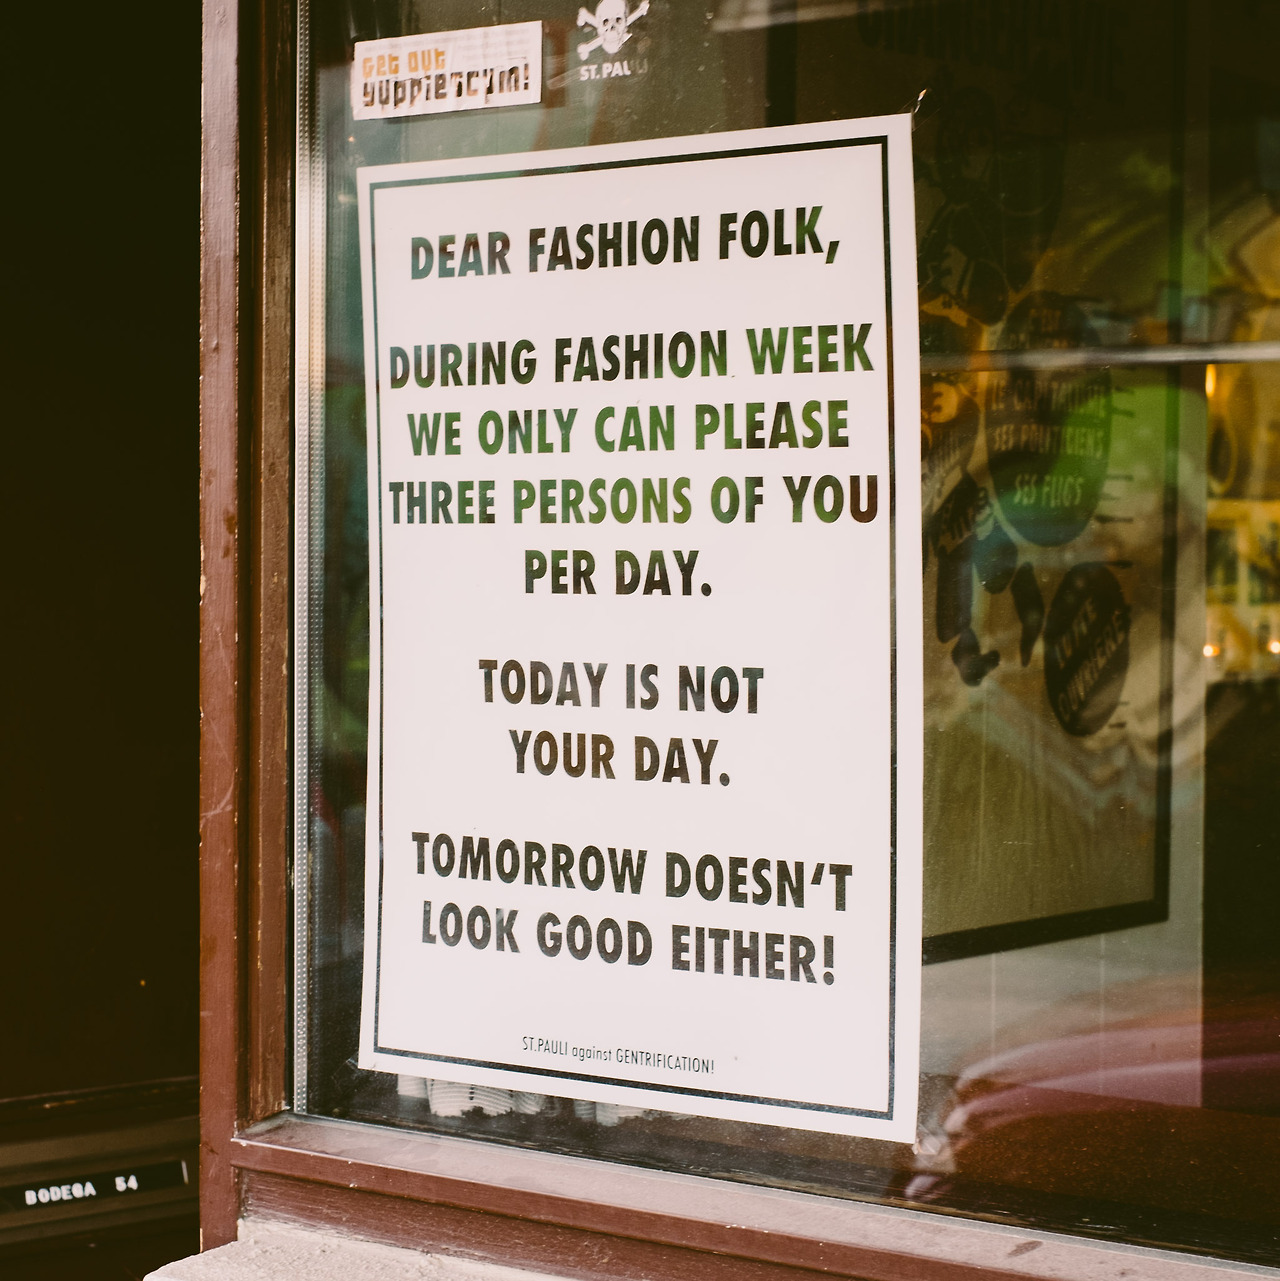 Sorry fashion folk but tomorrow doesn't look good either.